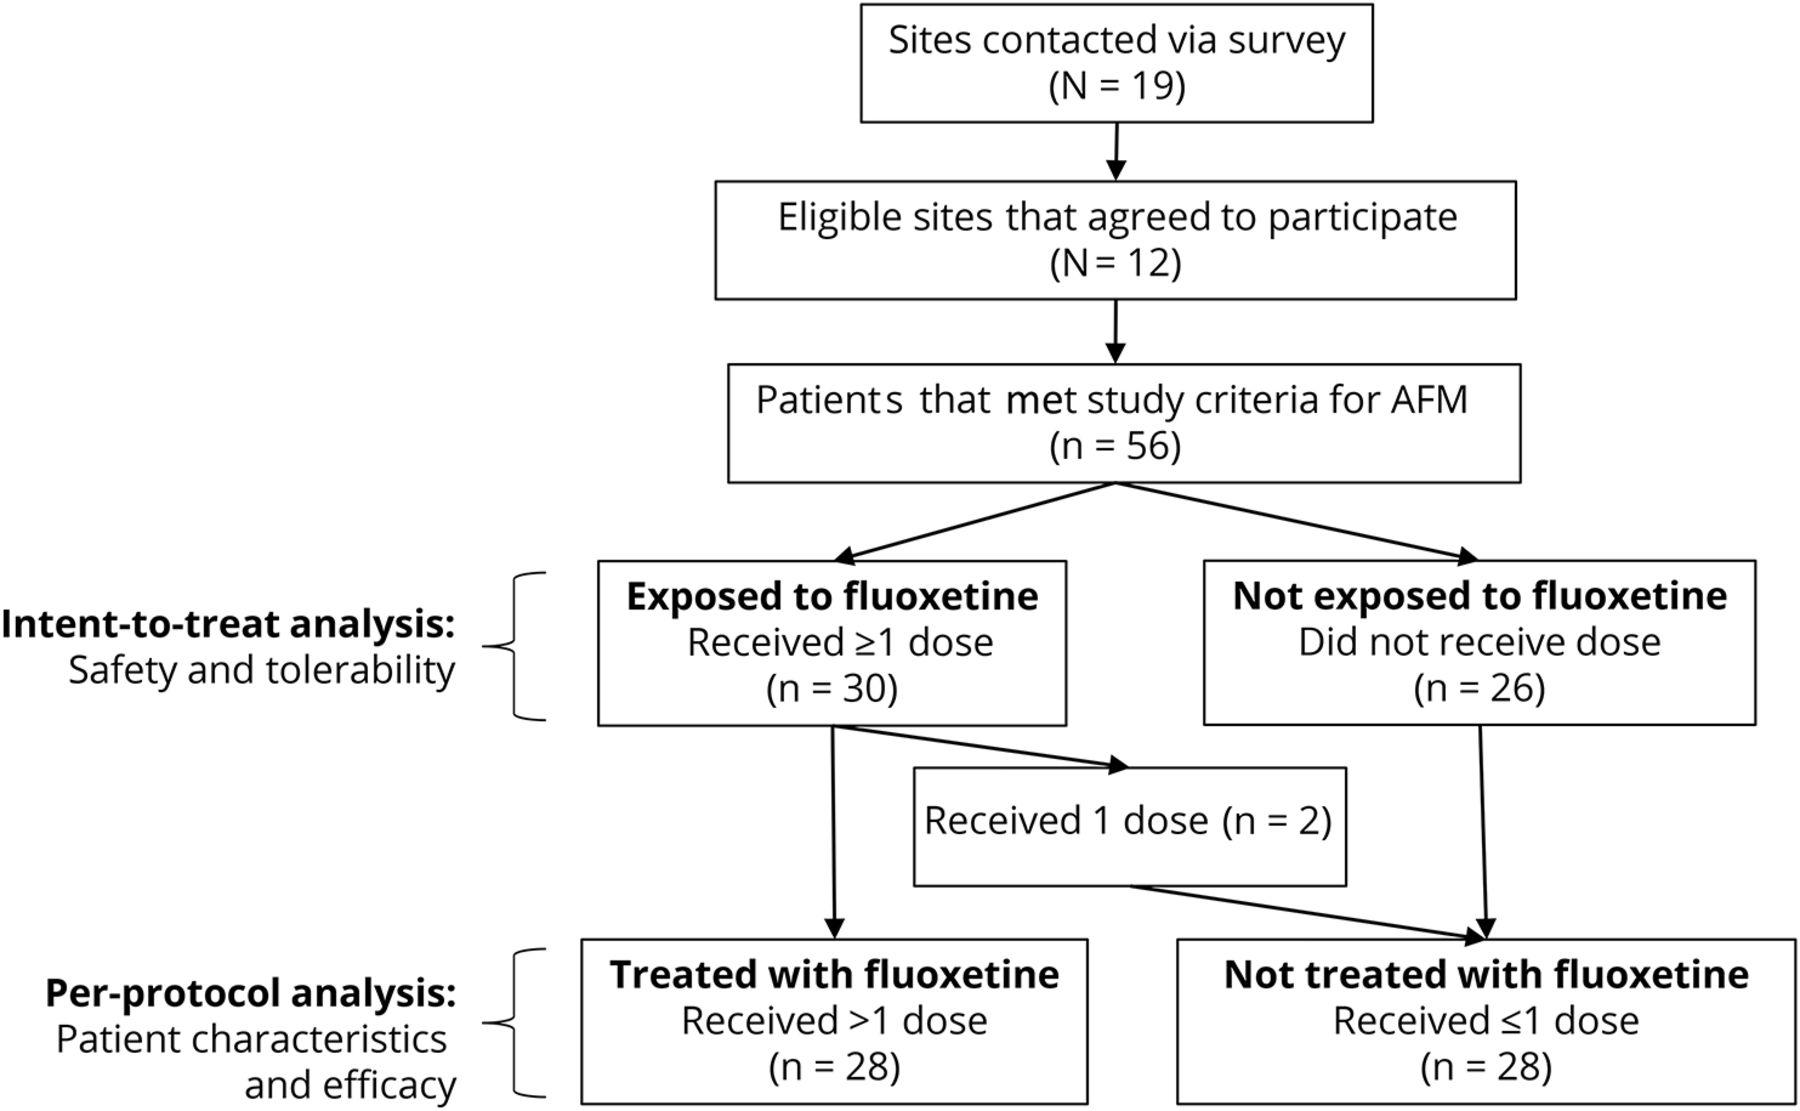 Safety, tolerability, and efficacy of fluoxetine as an antiviral for